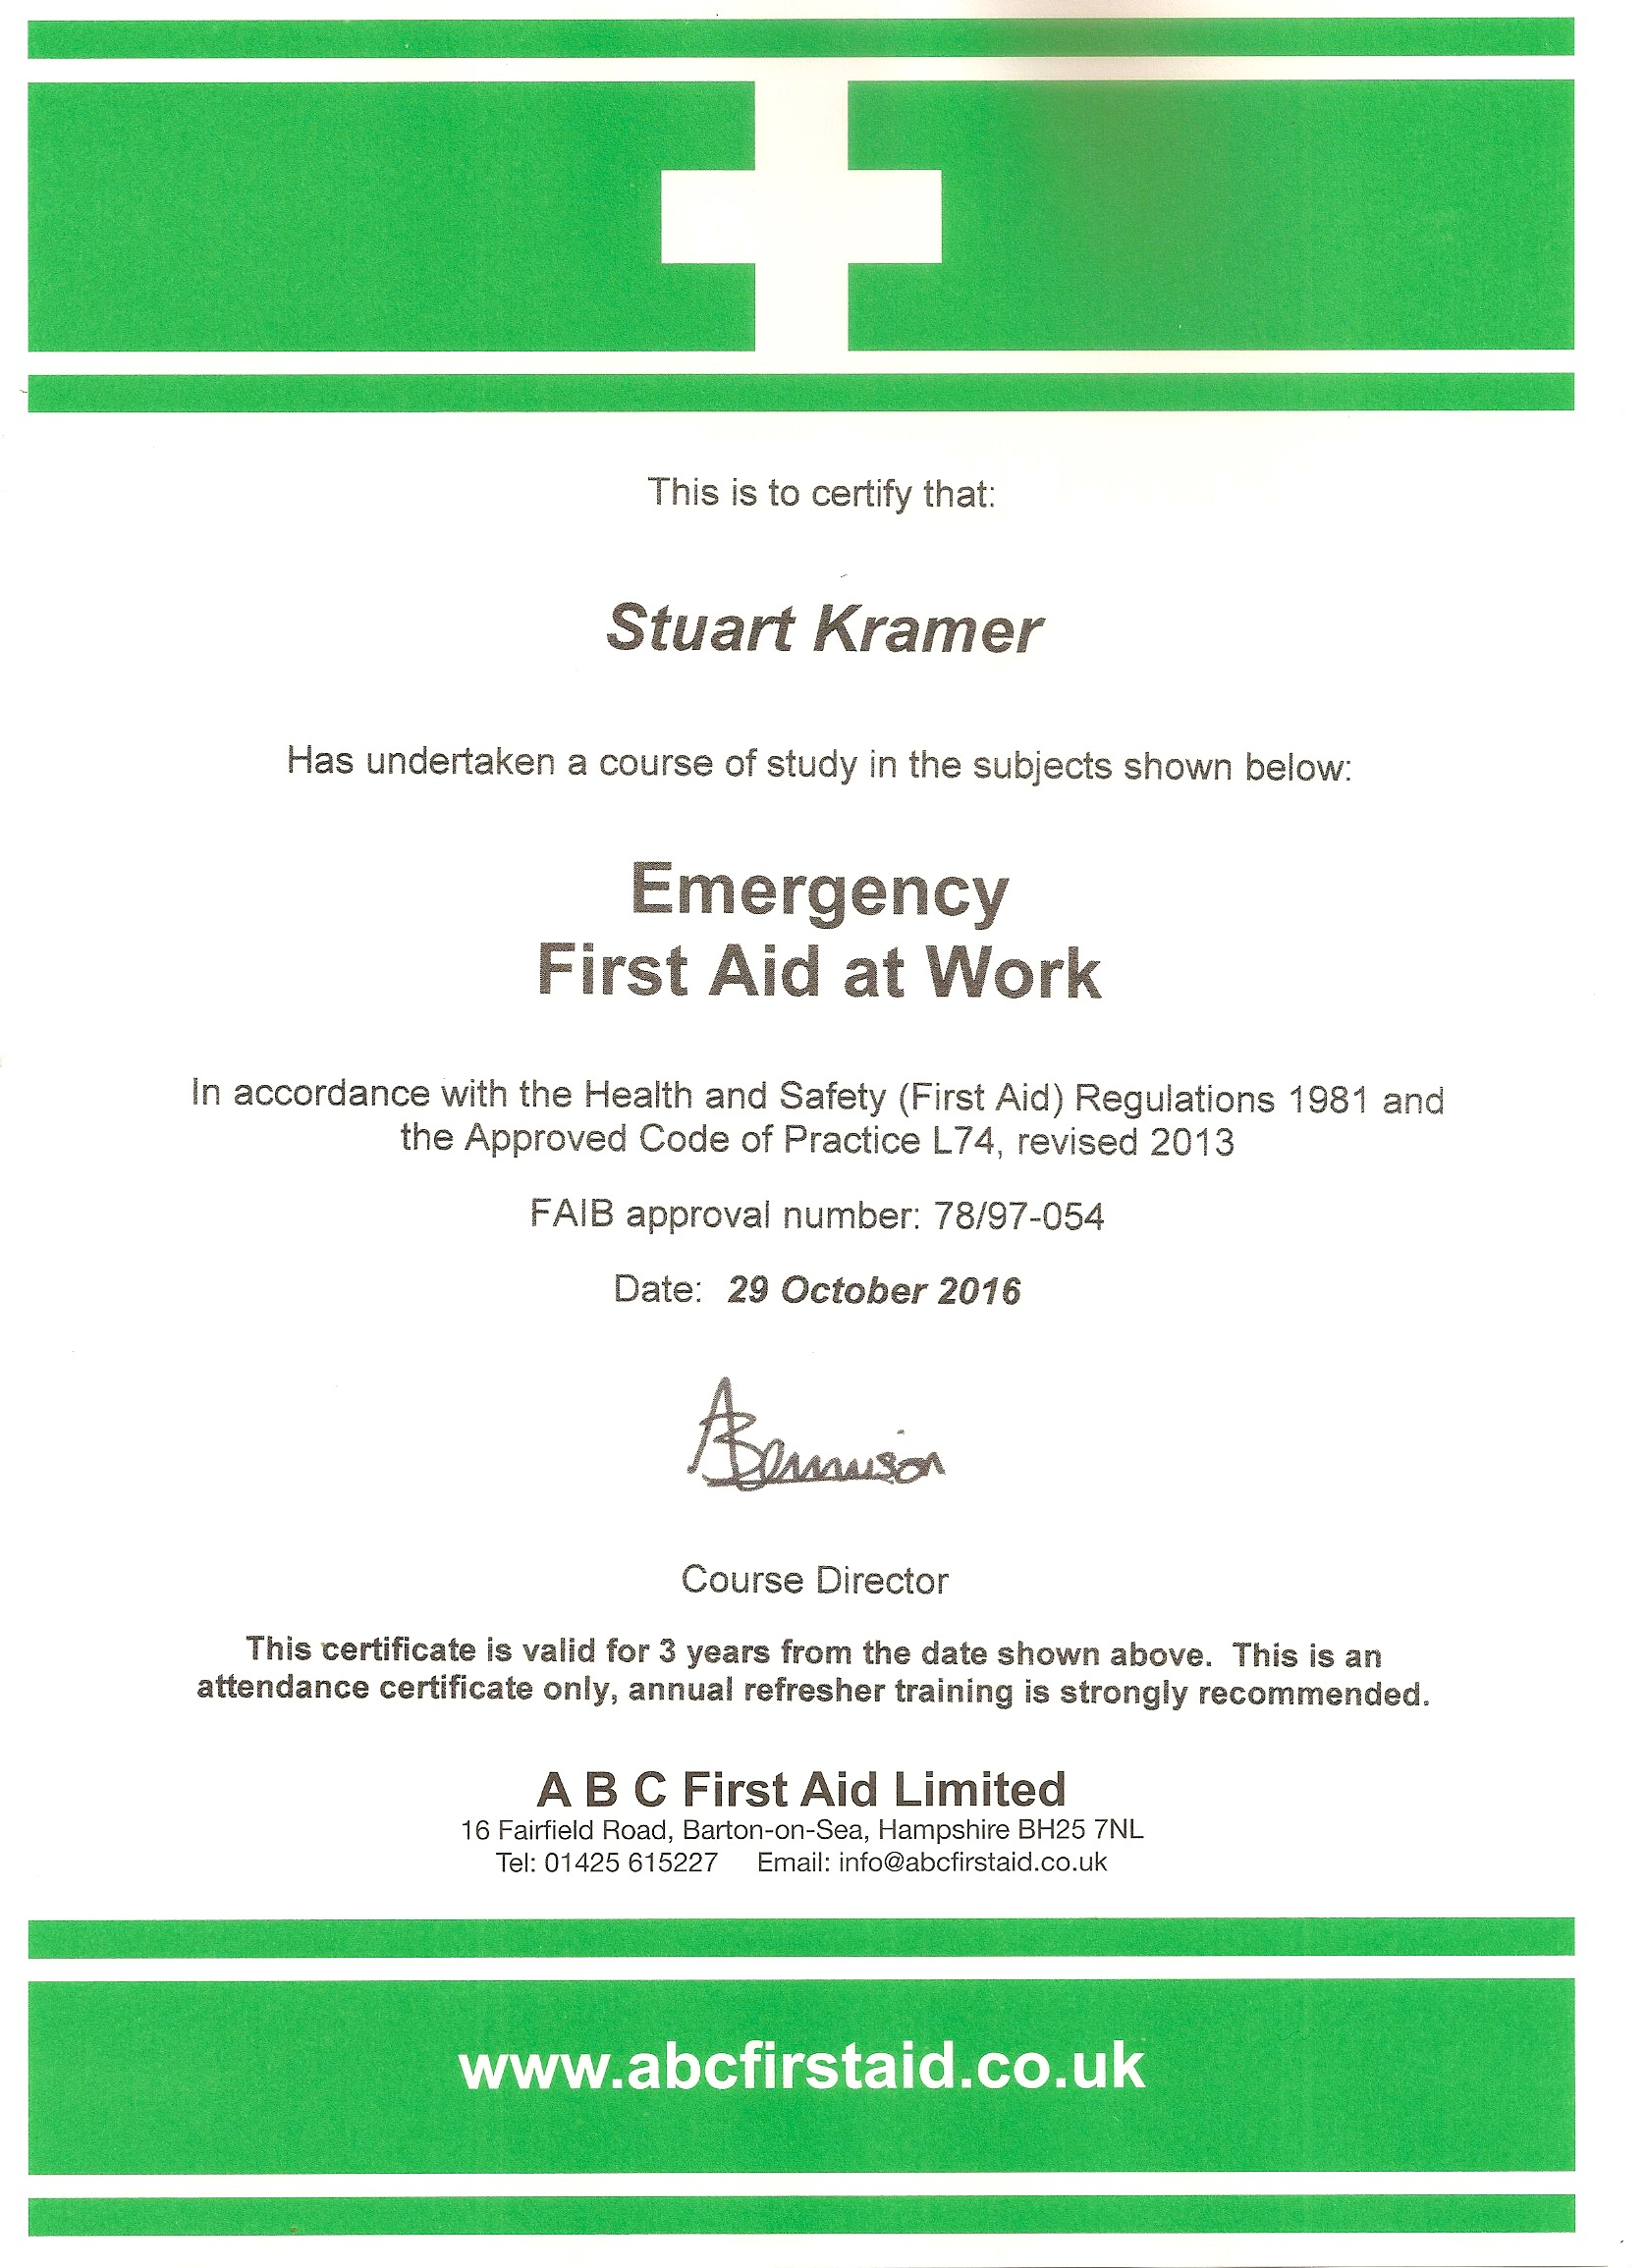 First Aid Certificates Bush House Osteopathic Practice